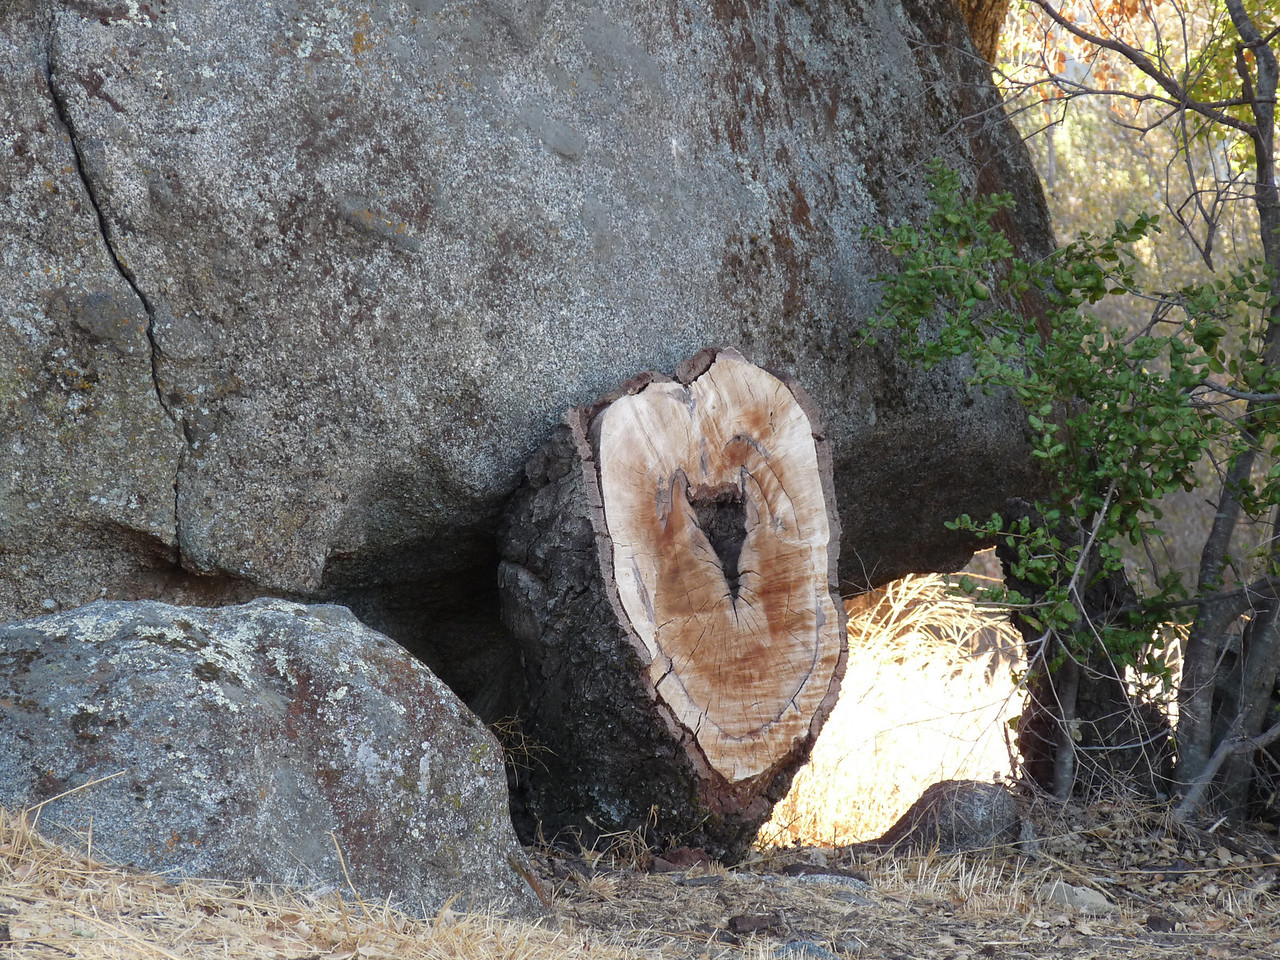 a hear-shaped stump growing right under a huge boulder